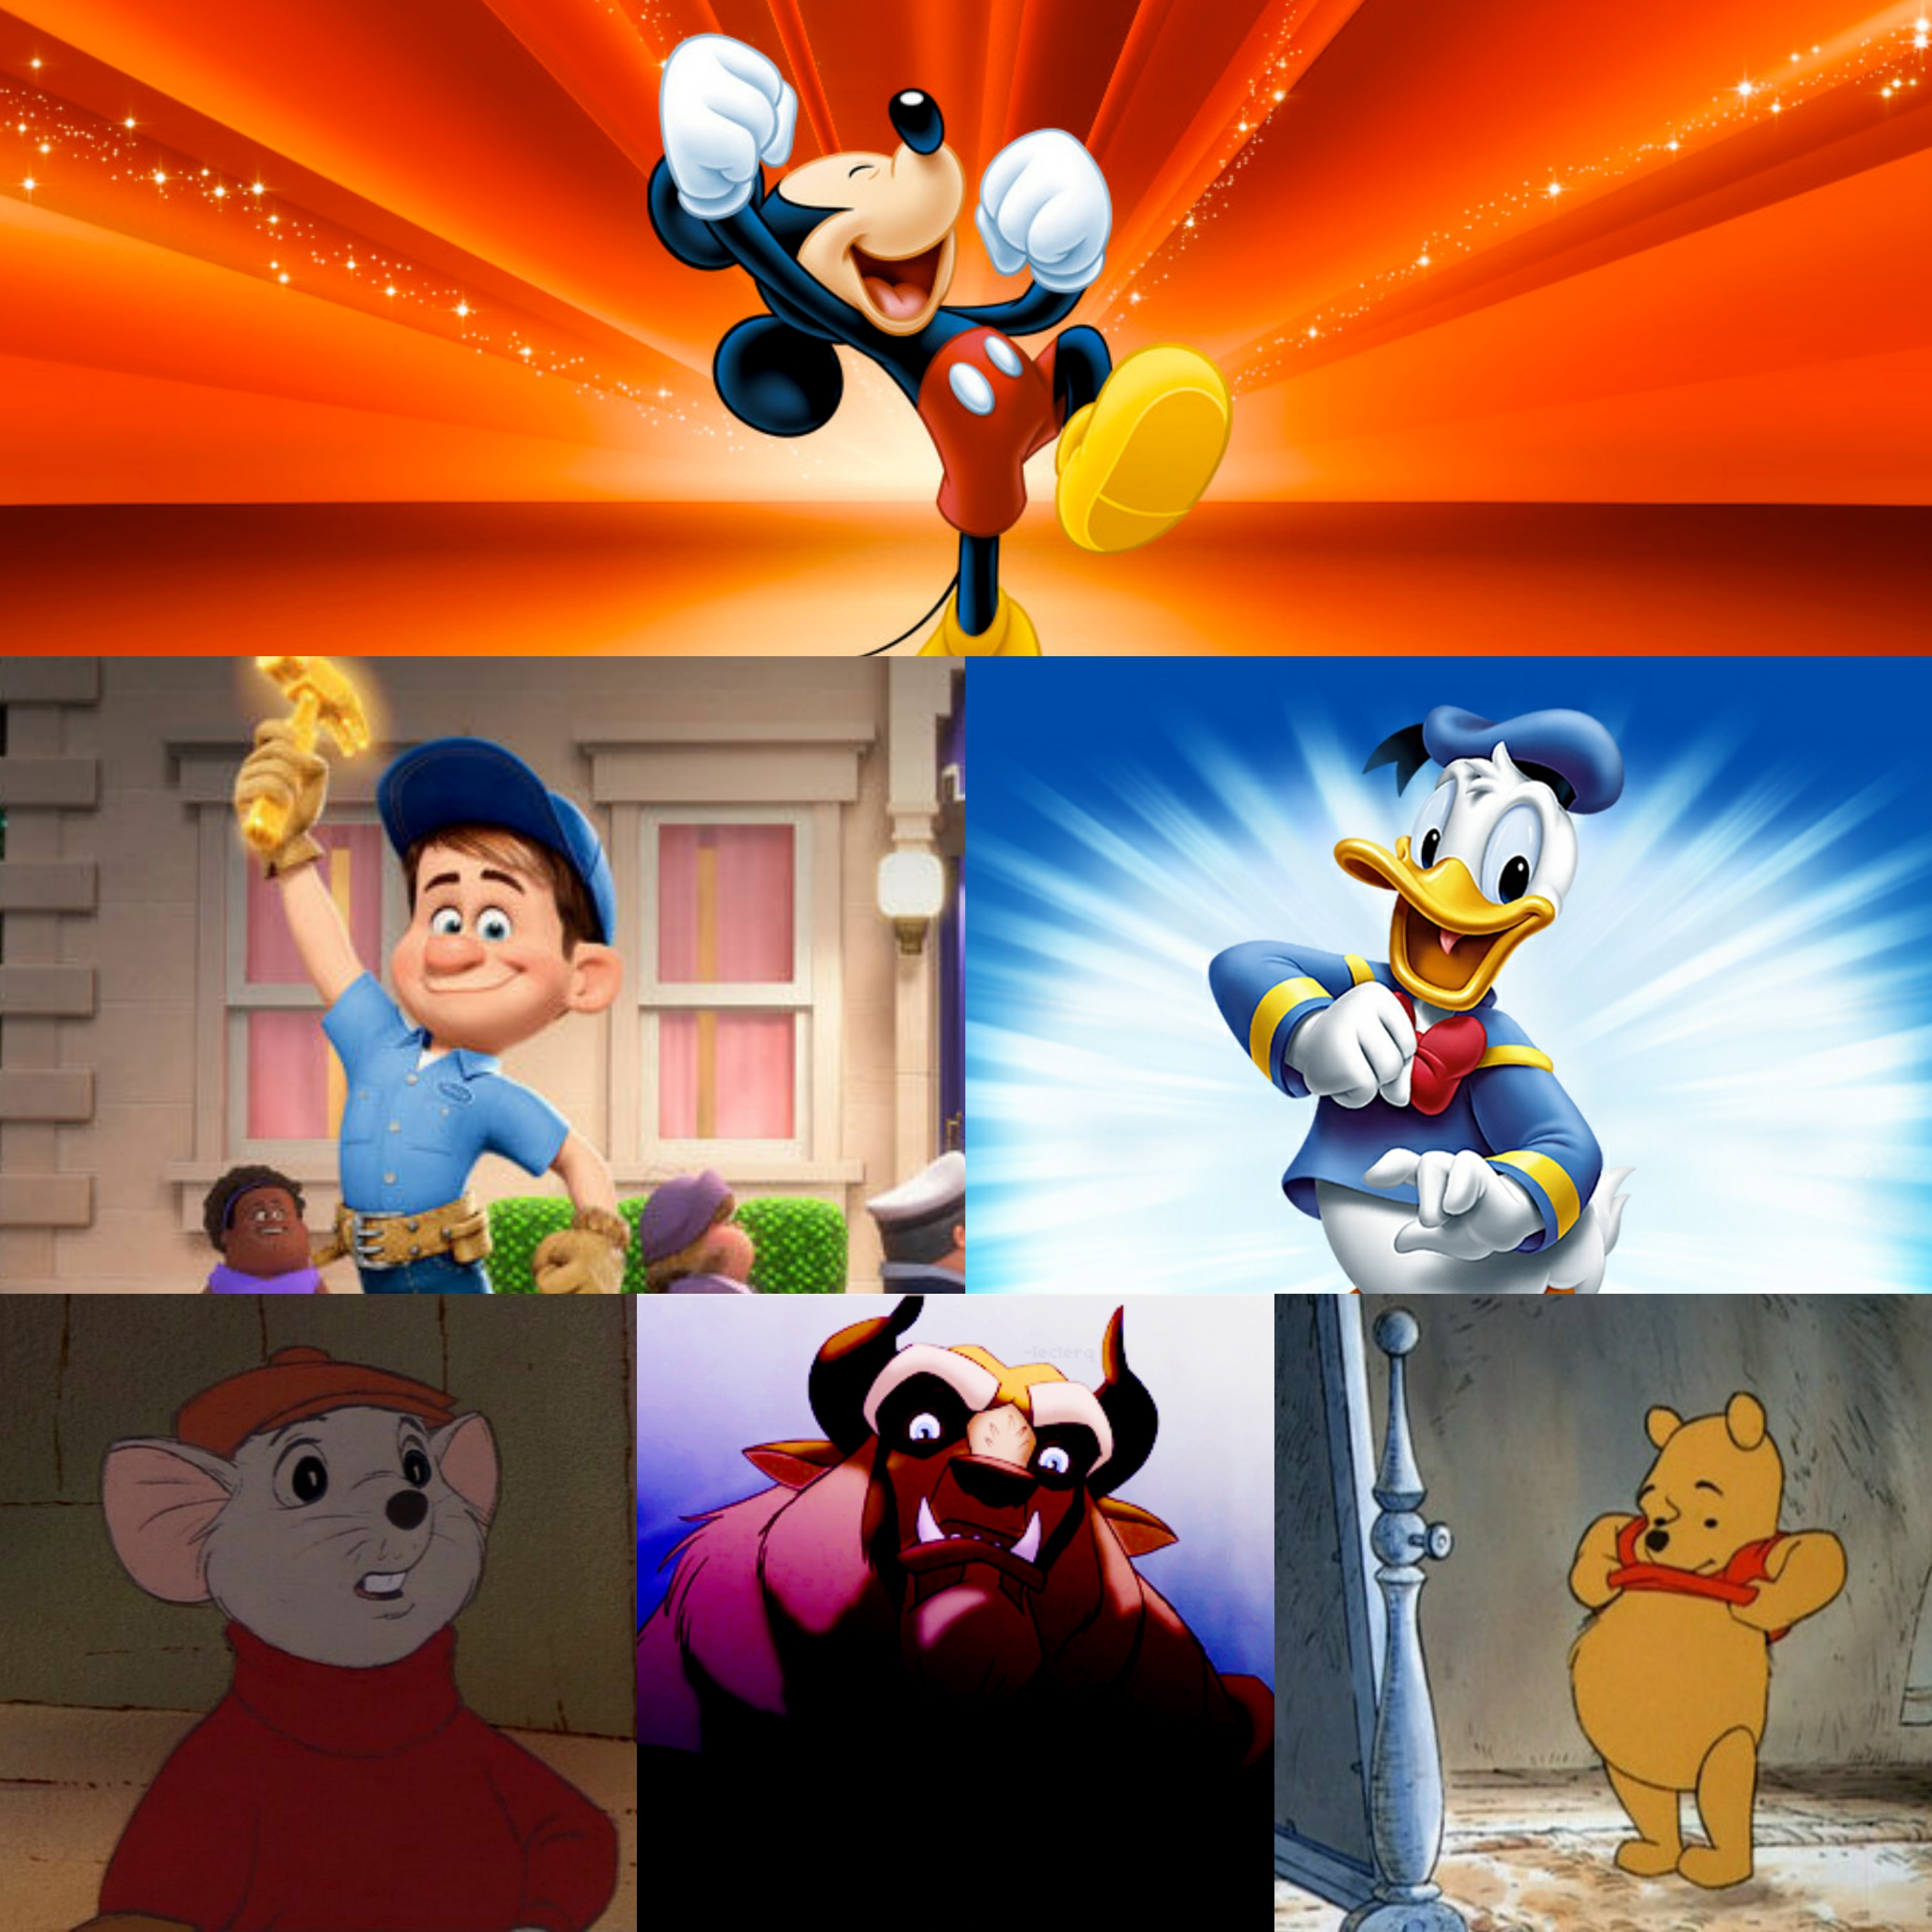 Donald Duck Wallpaper: The Disney Animation Tag